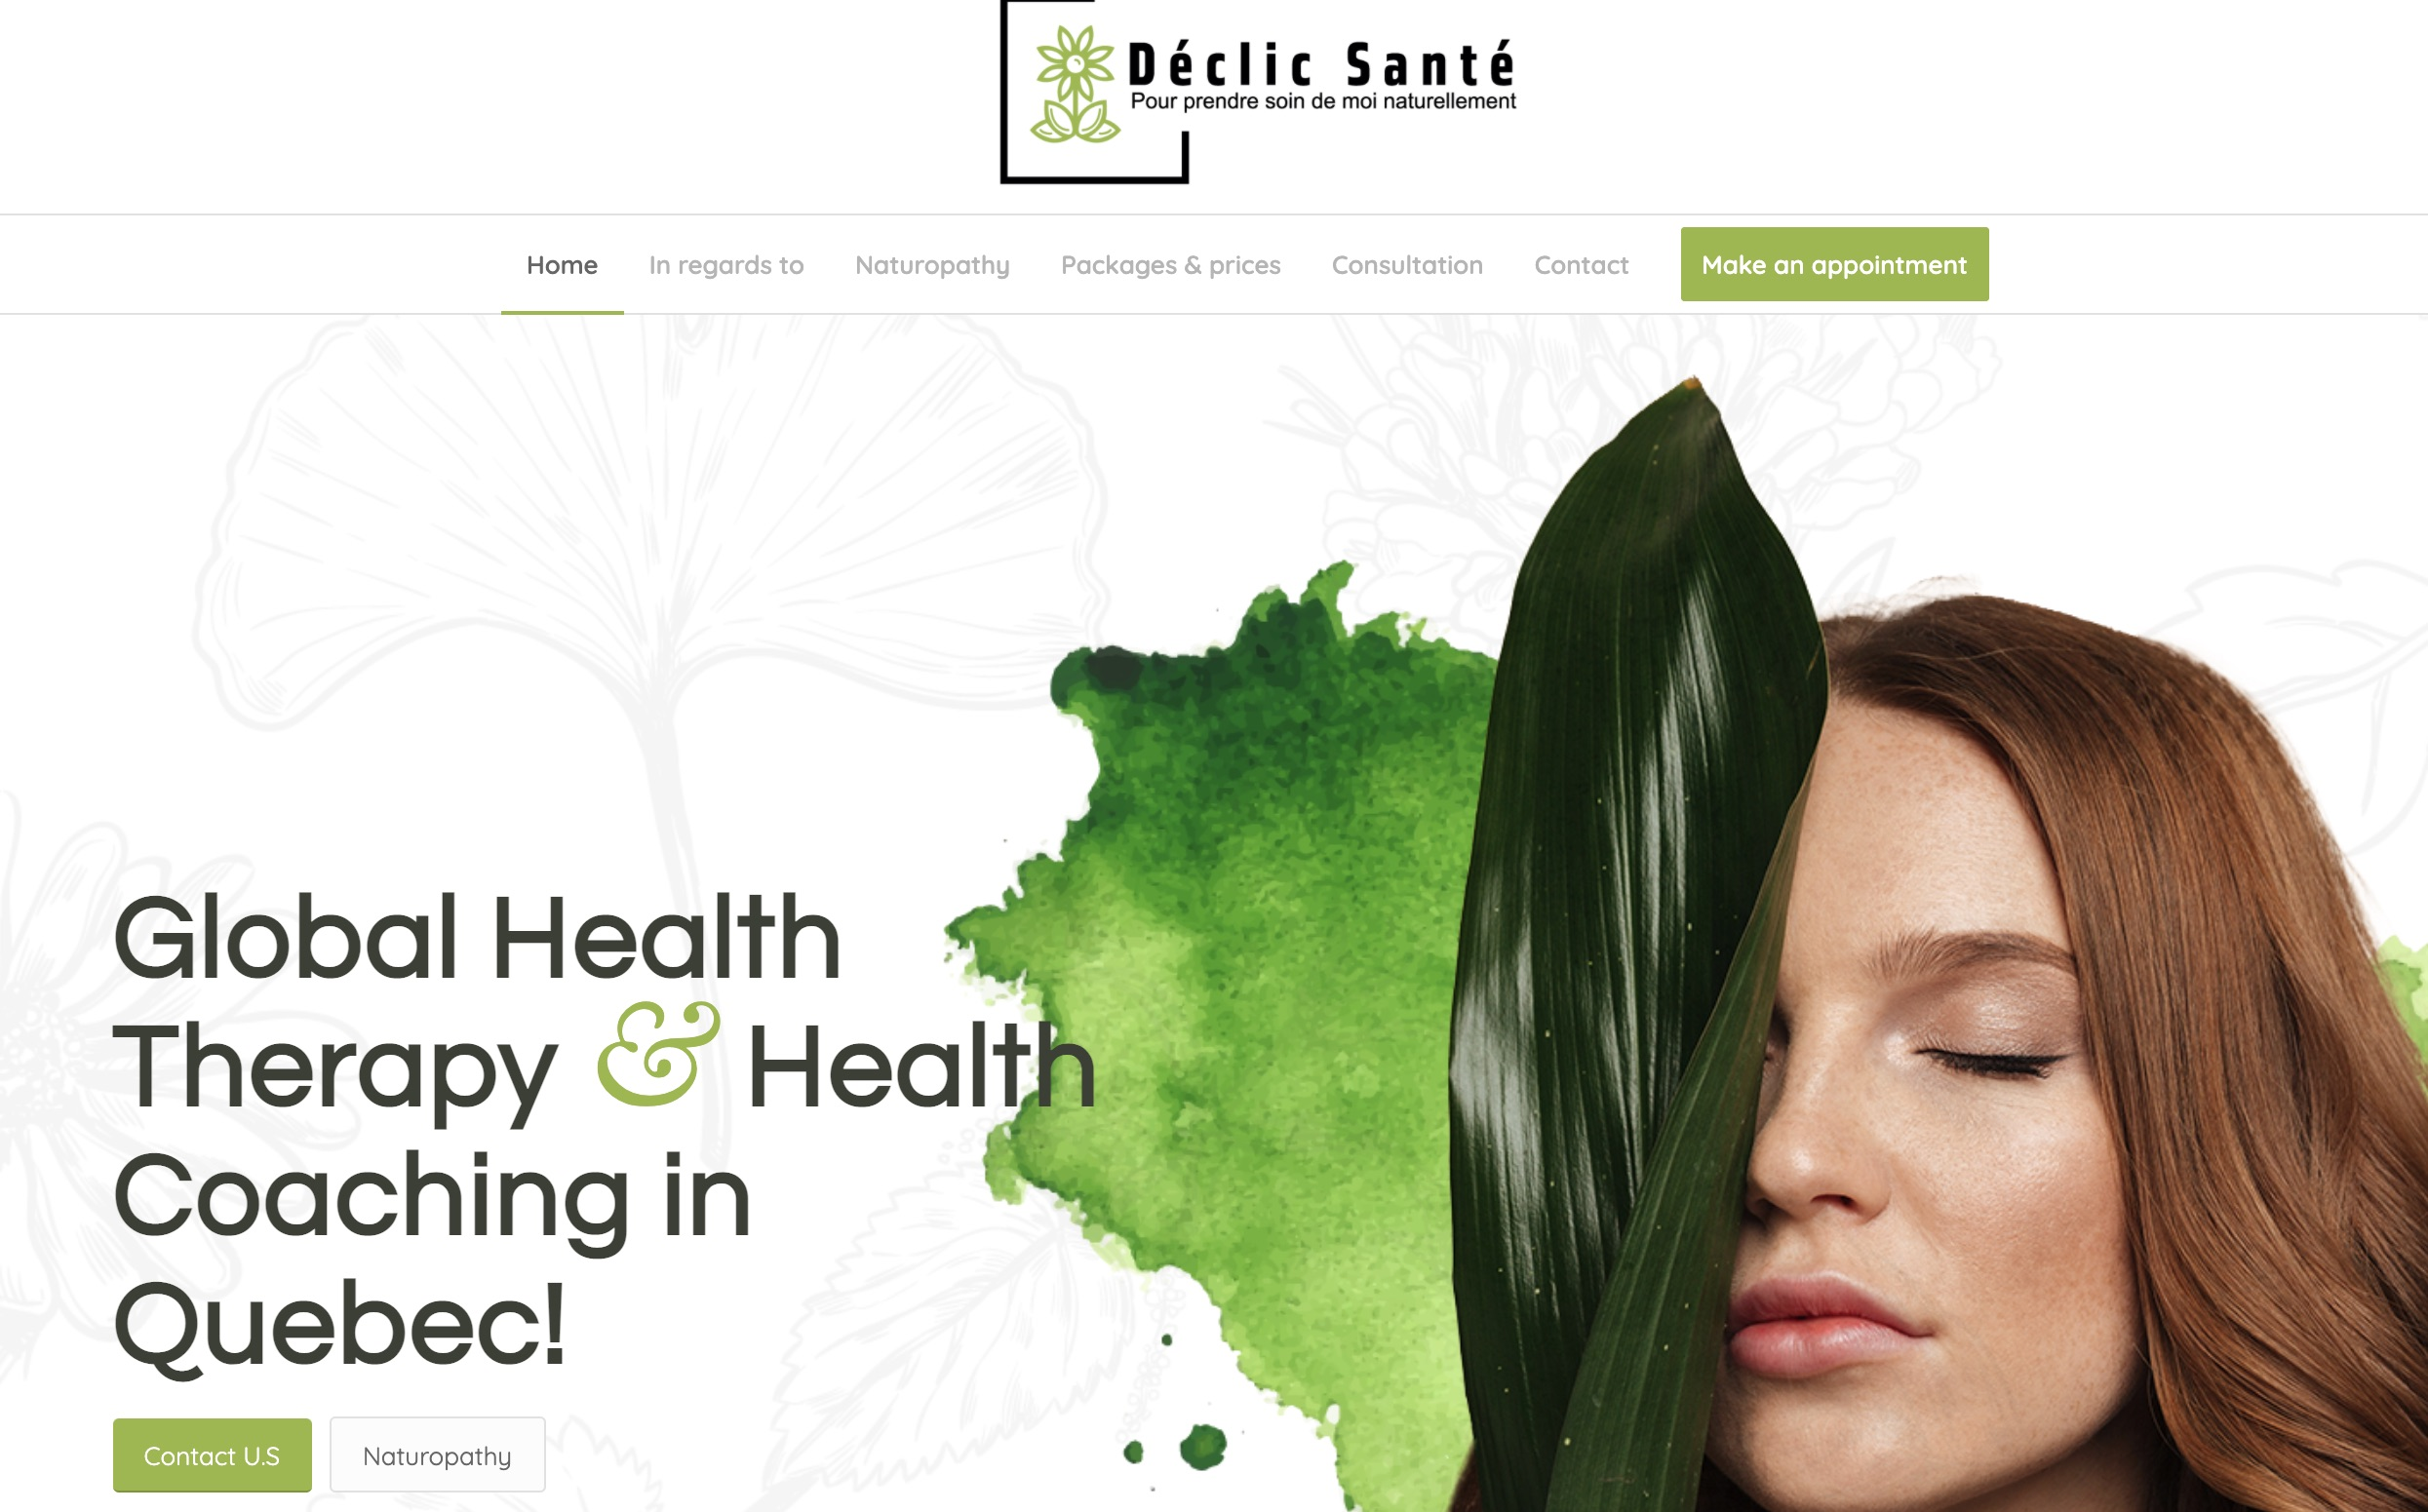 """Déclic Santé - Naturopathe Naturothérapeute - Thérapie en santé global was established and managed by Isabelle Becqueriaux. She has proudly worked in the field of health for more than thirty years, gaining a wealth of expertise. Collège des Médecines Douces du Québec awarded her a degree in neuropathy (CMDQ). She was finally recognized as a Naturopath, ND, and received her diploma. This company is run on the belief that each individual is unique, and that we must protect this """"vitality capital"""" that is unique to each of them. In a systemic process, it is their responsibility to work with the individual as well as the health actors who surround them."""